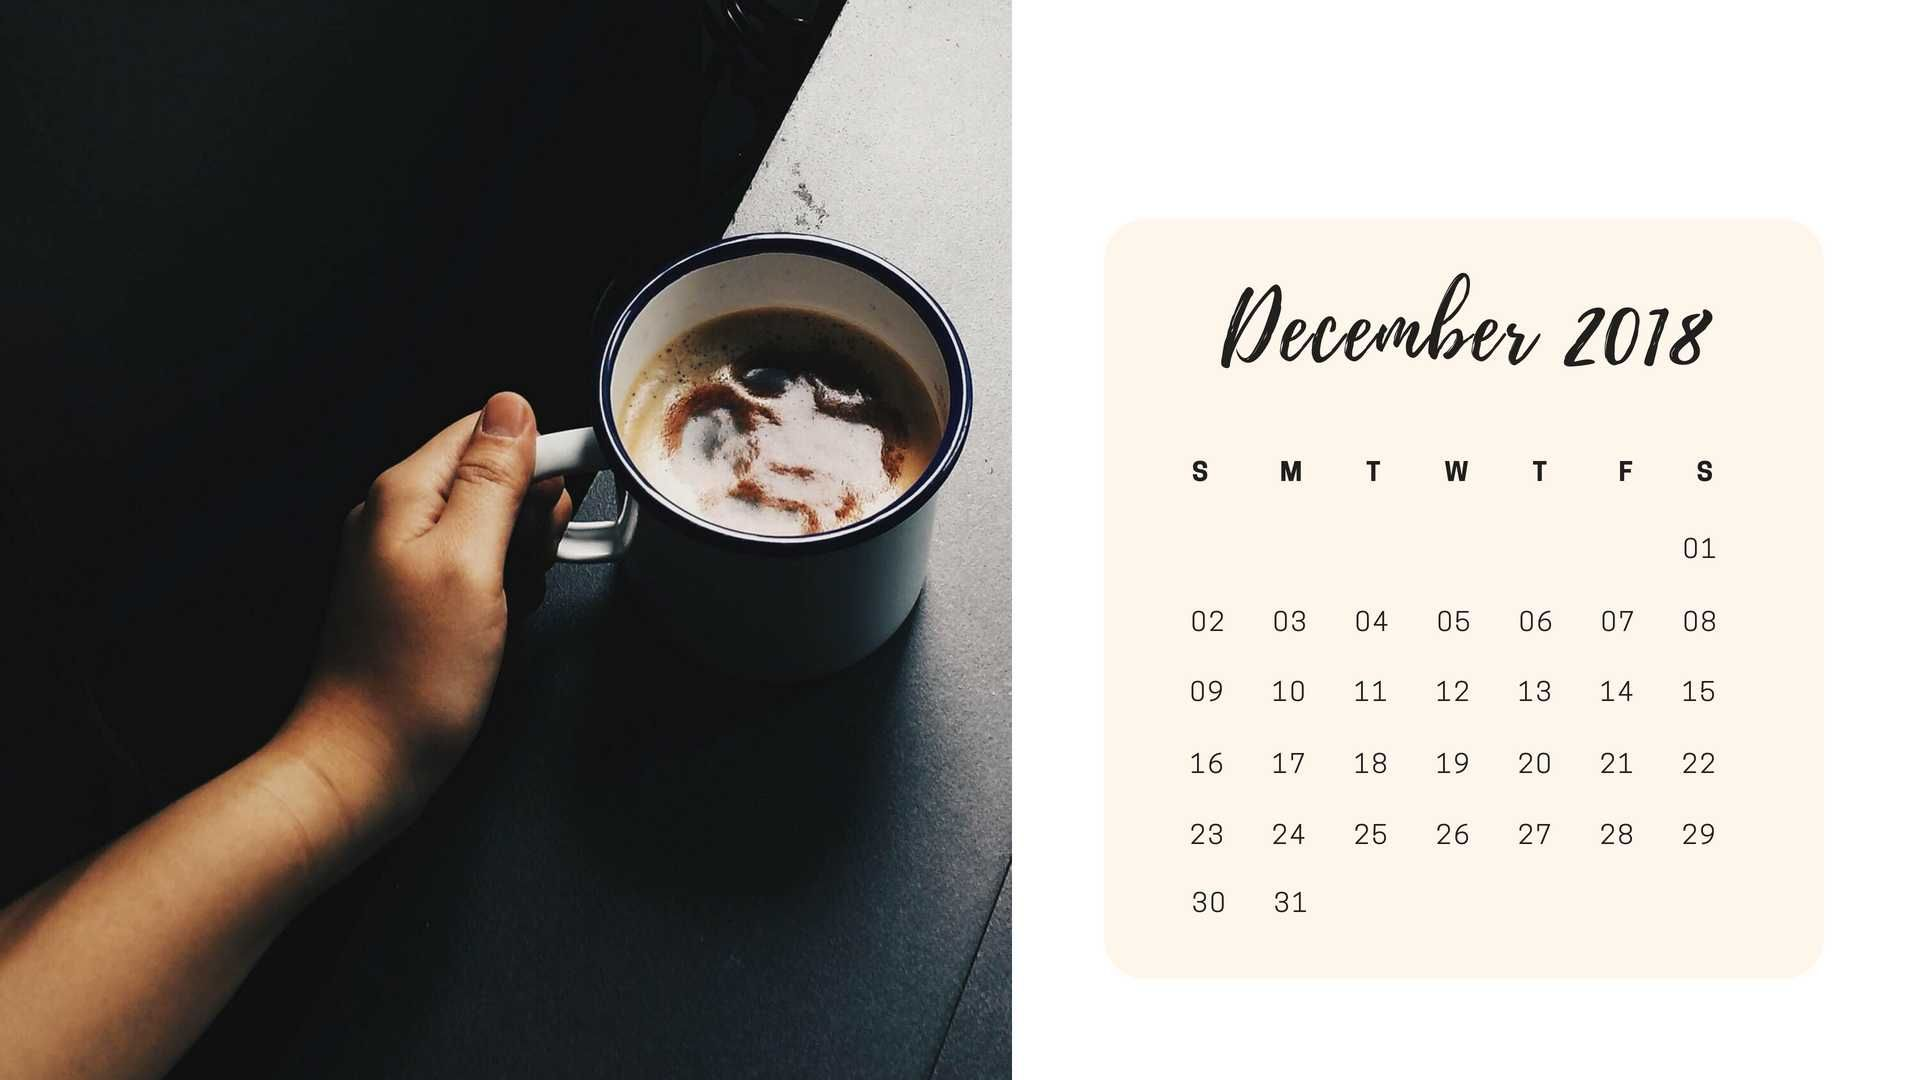 December 2019 Calendar Laptop Wallpaper December 2018 Calendar Wallpaper for Desktop Background HD Images